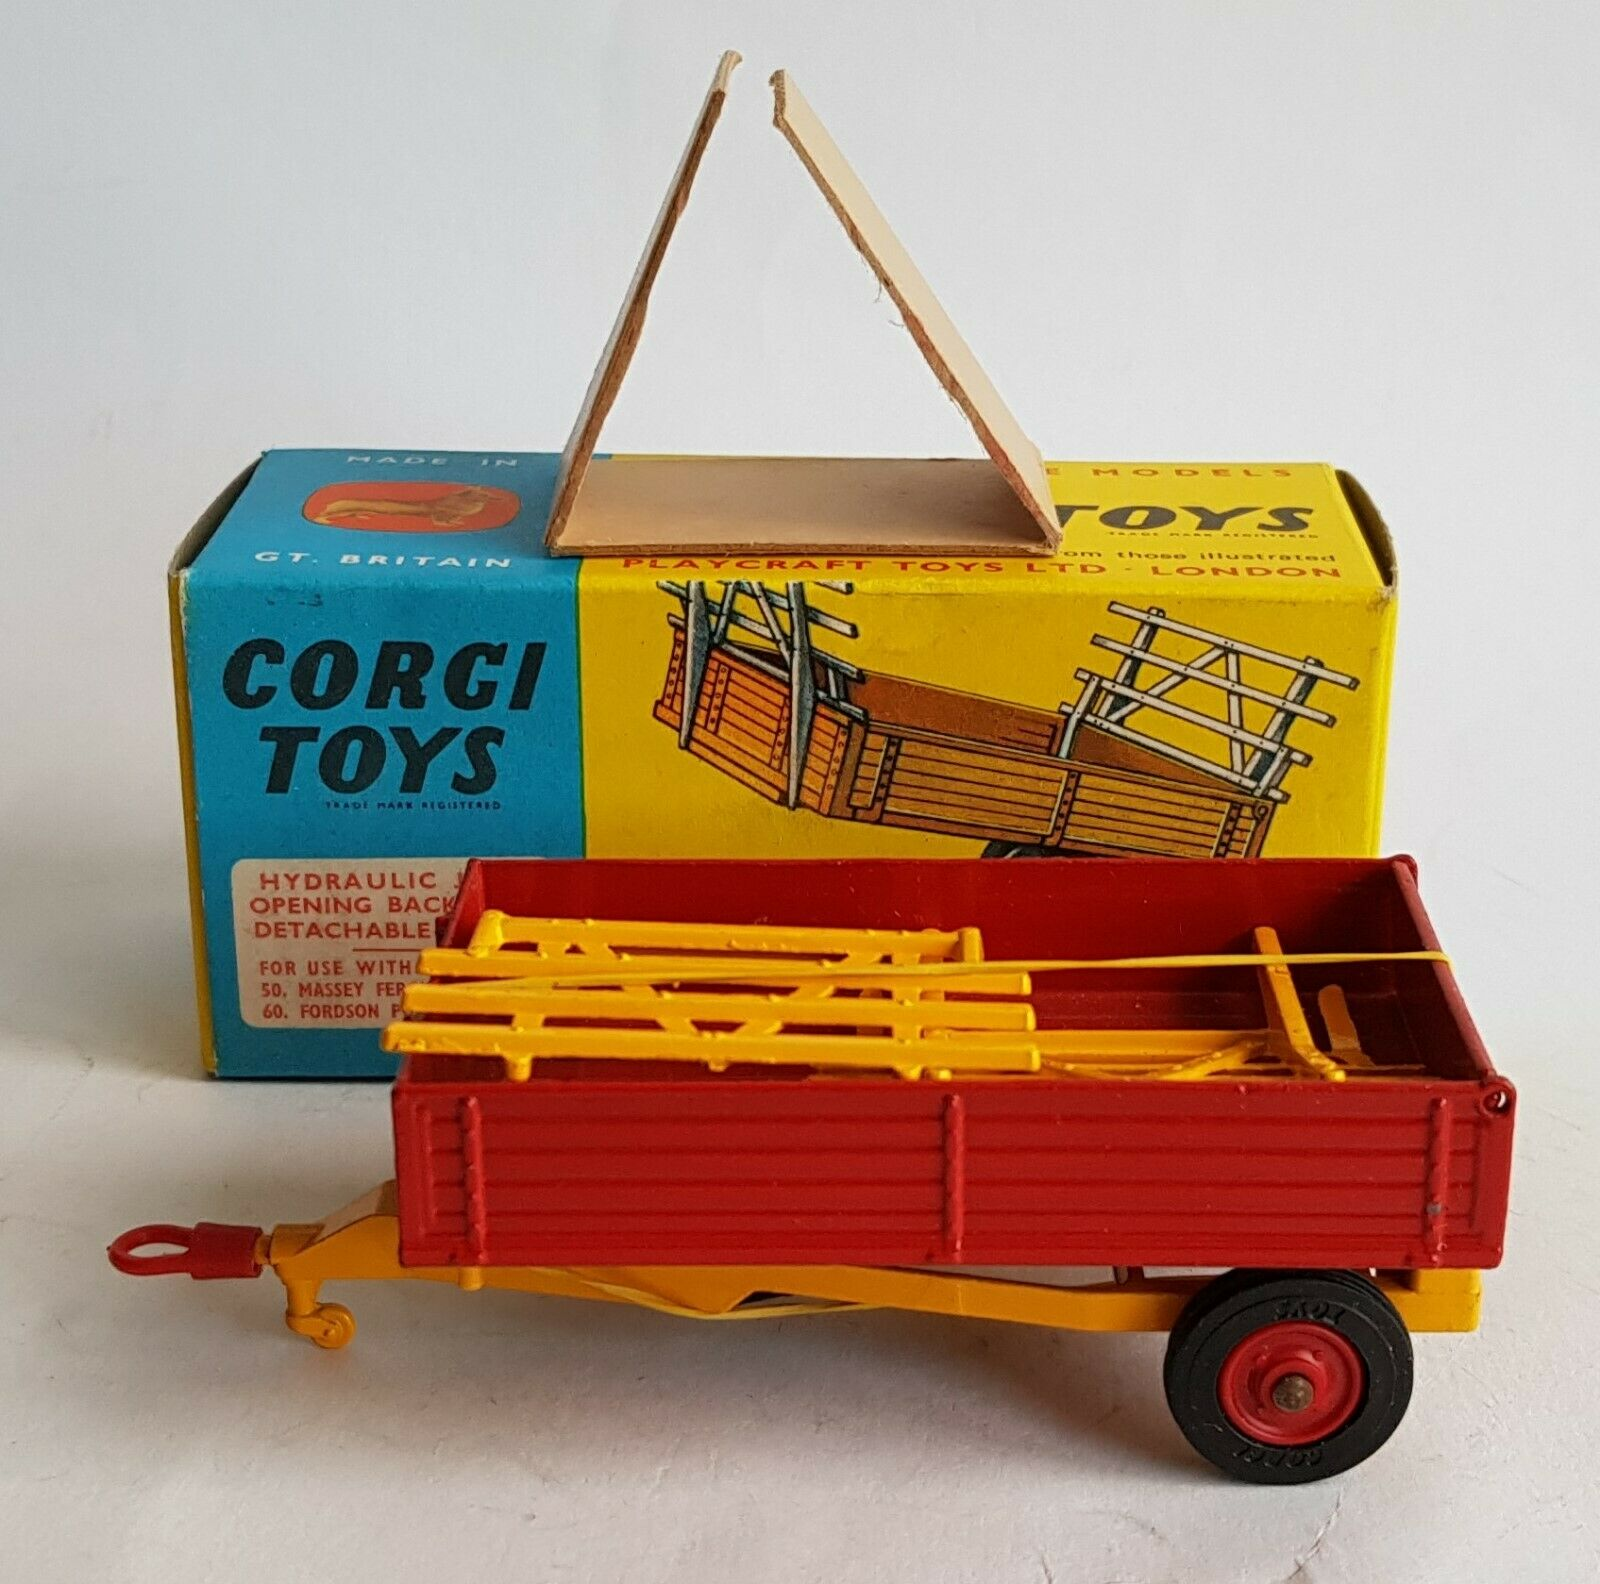 Corgi Spielzeugs 62, Landwirtschaft Tipper Trailer, with Plastic Hook, - Superb Mint Condition.